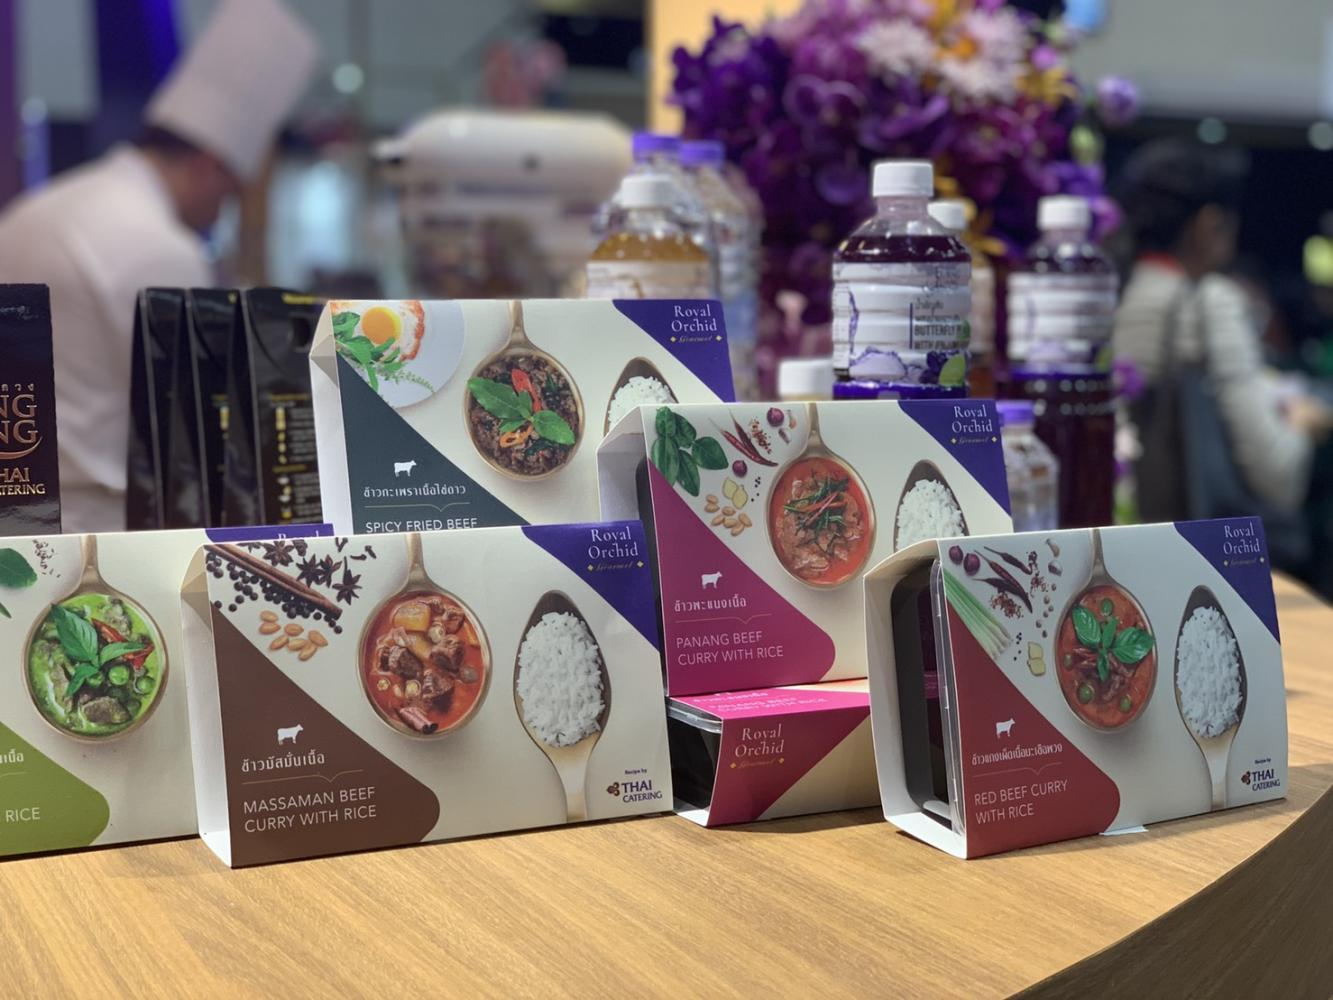 THAI Catering showcases new prepared meals under the Royal Orchid Gourmet brand at Thaifex-World of Food Asia.